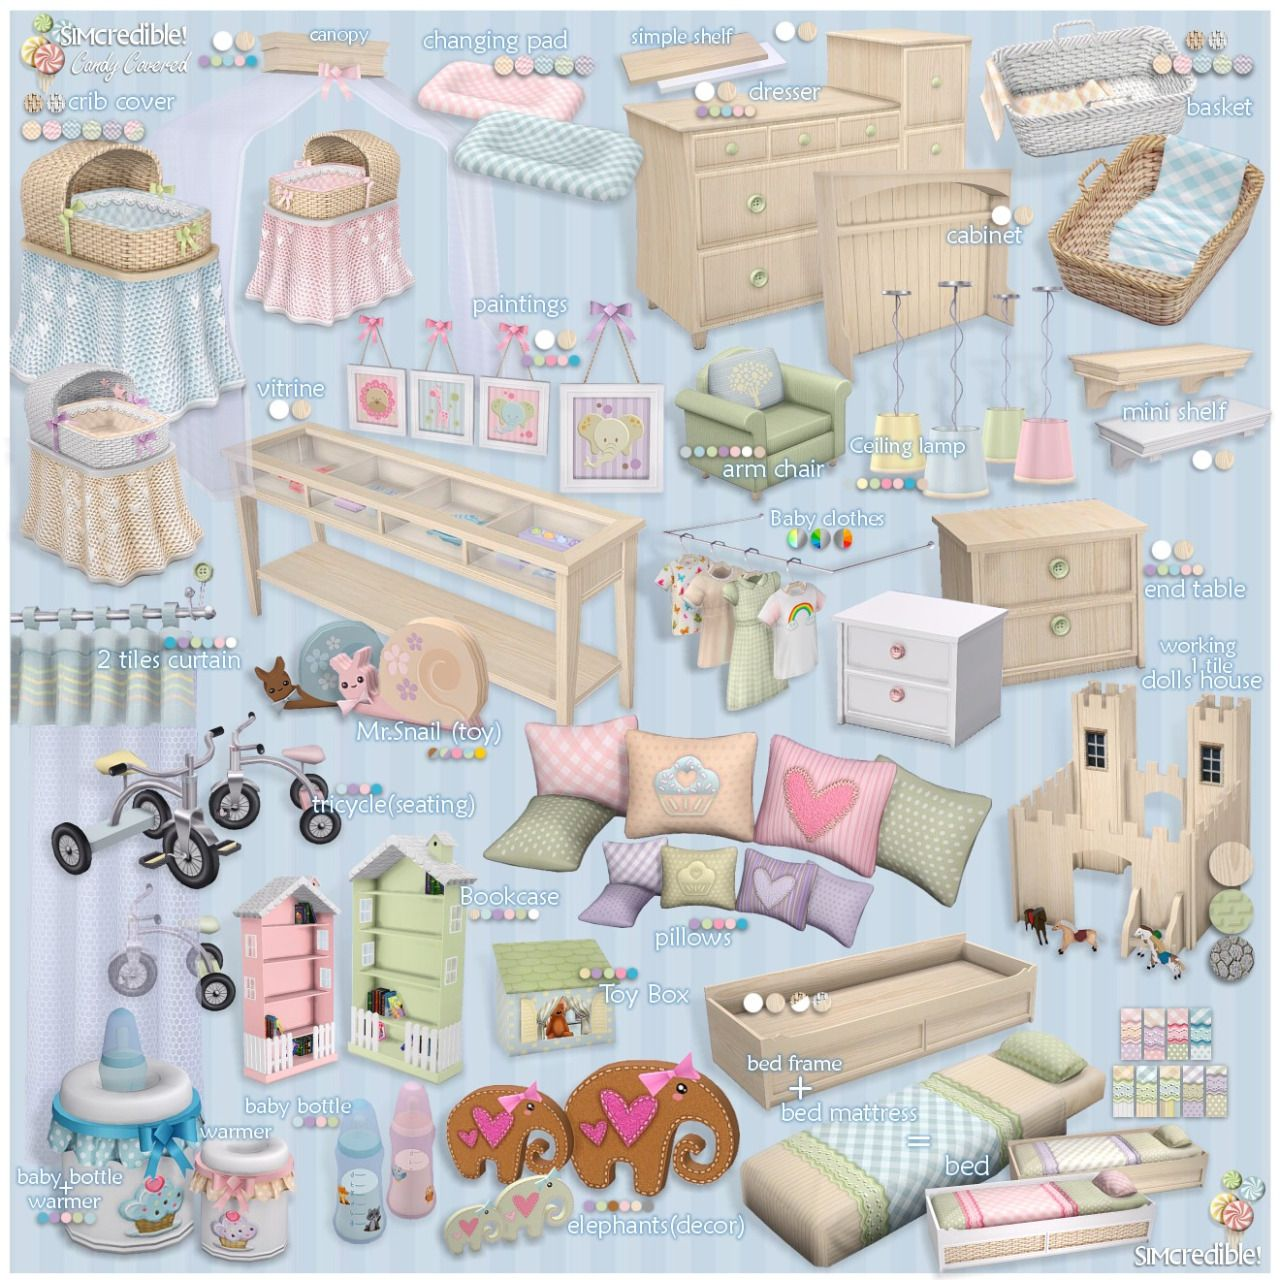 Lana cc finds candy covered by simcredible ts4 decor kids pinterest sims sims cc and - Sims 3 babyzimmer ...